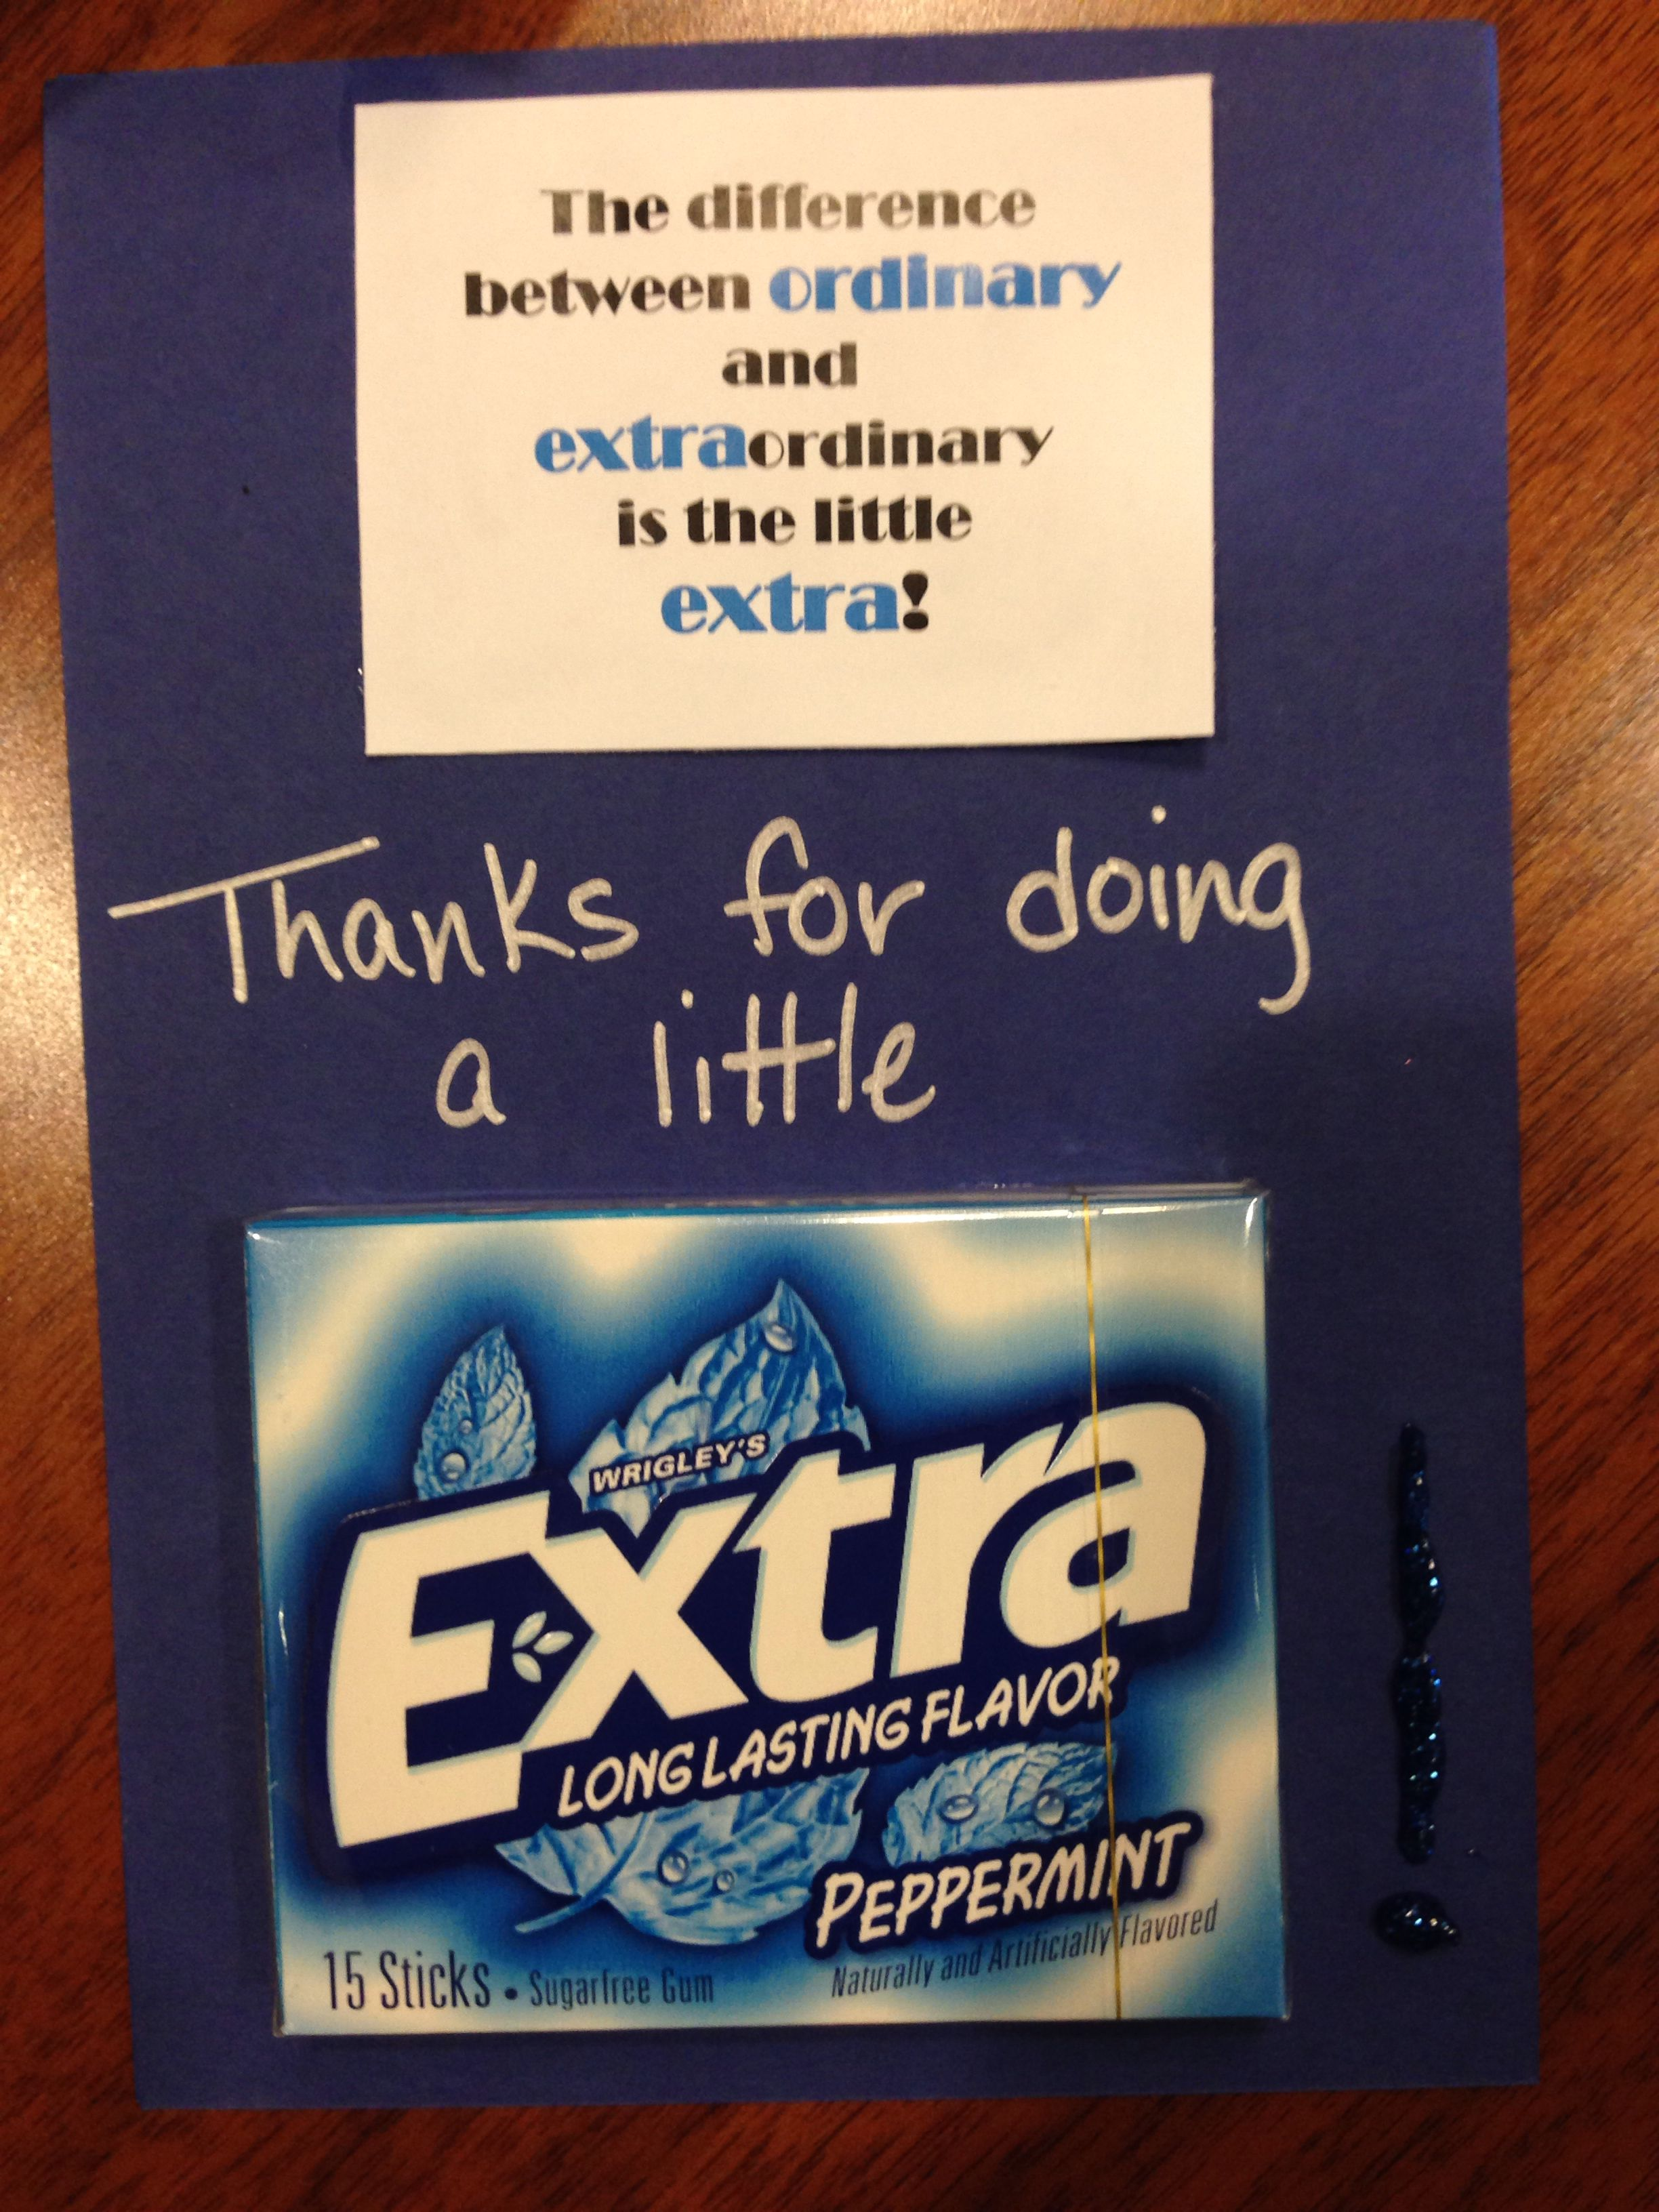 Neat idea for a thank you cardgift pinteres neat idea for a thank you cardgift more negle Choice Image